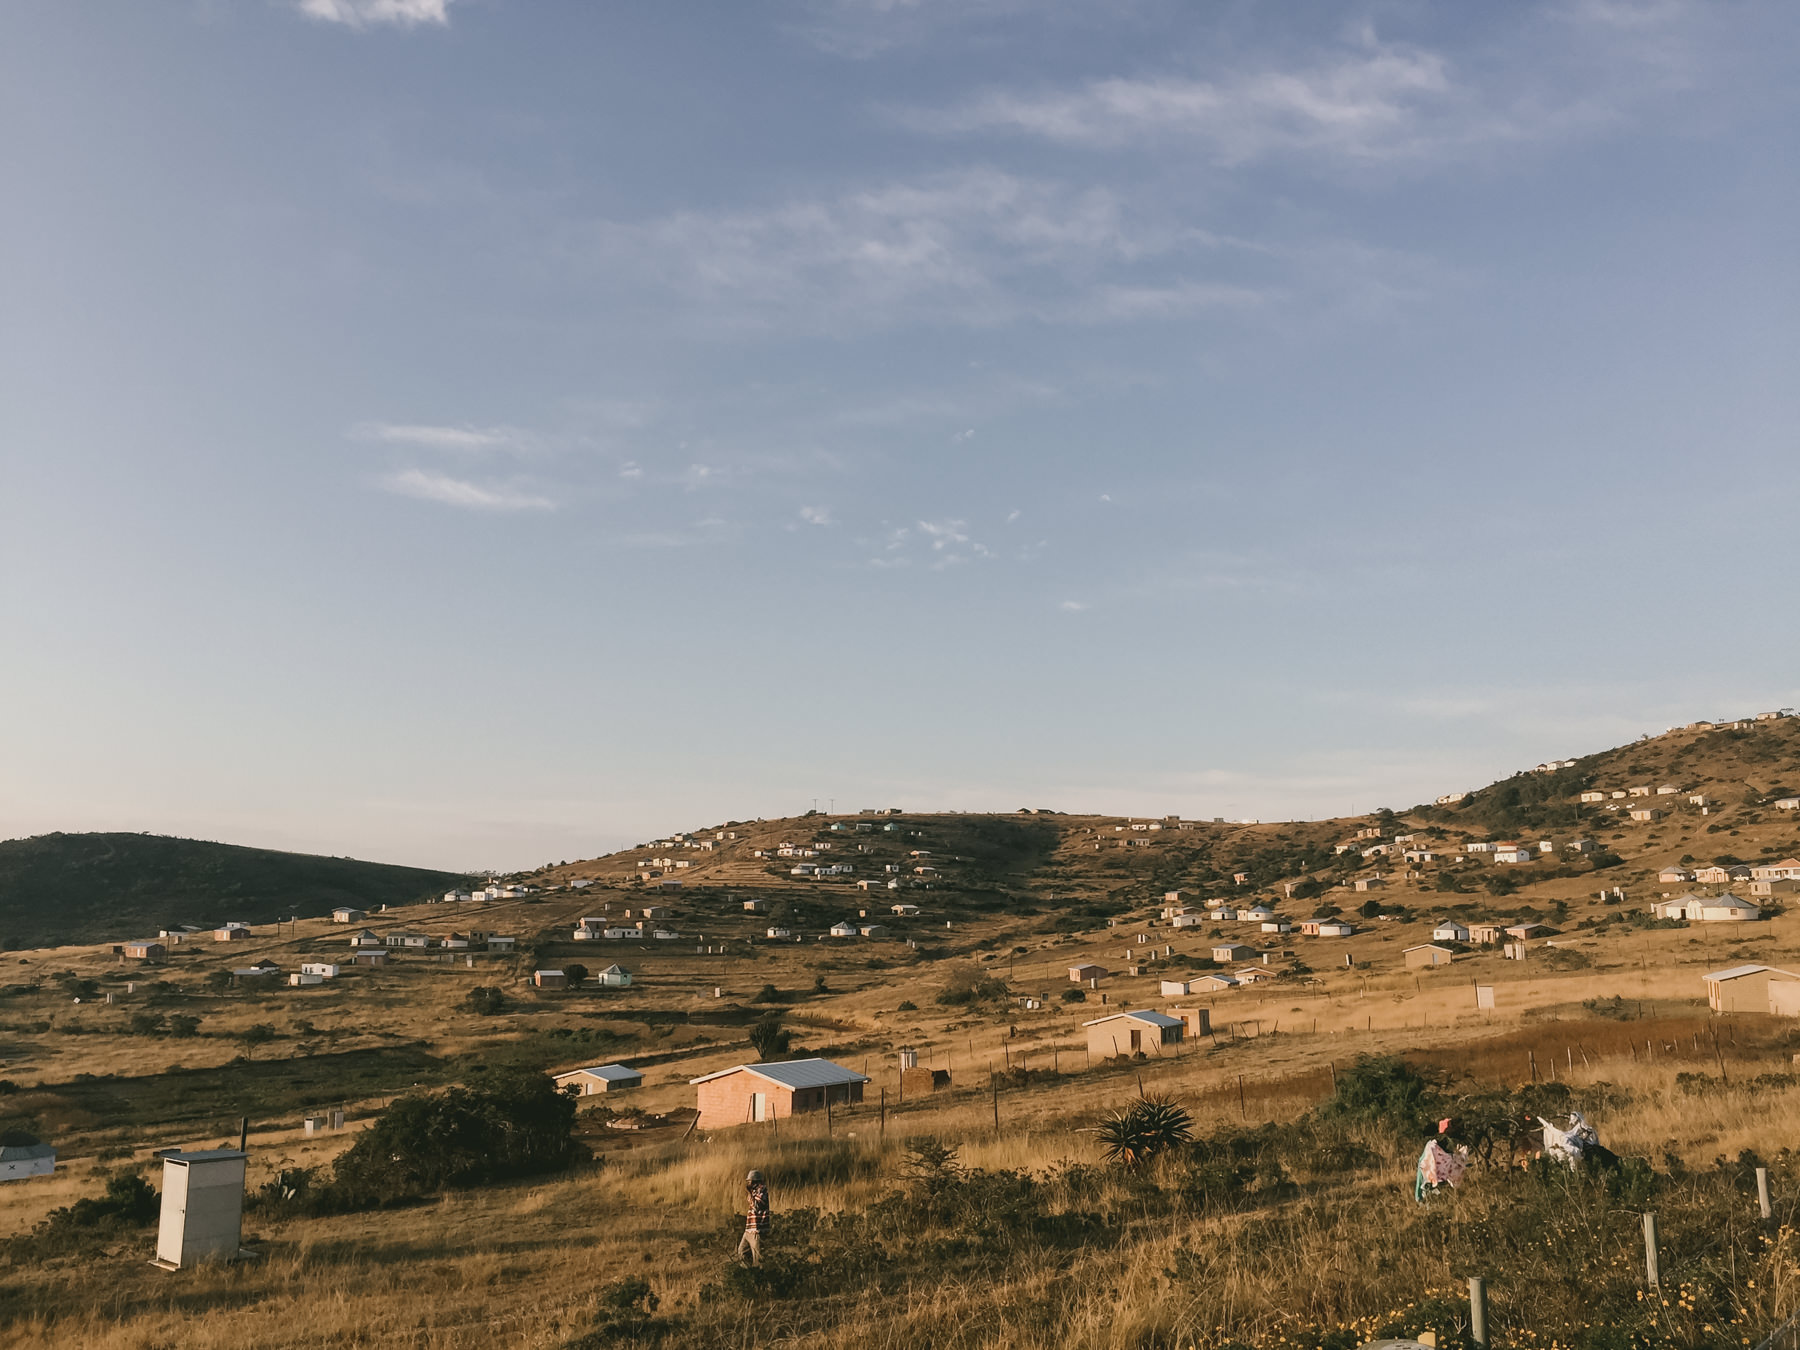 The community area around Khulani. (Taken with iphone... surprisingly)